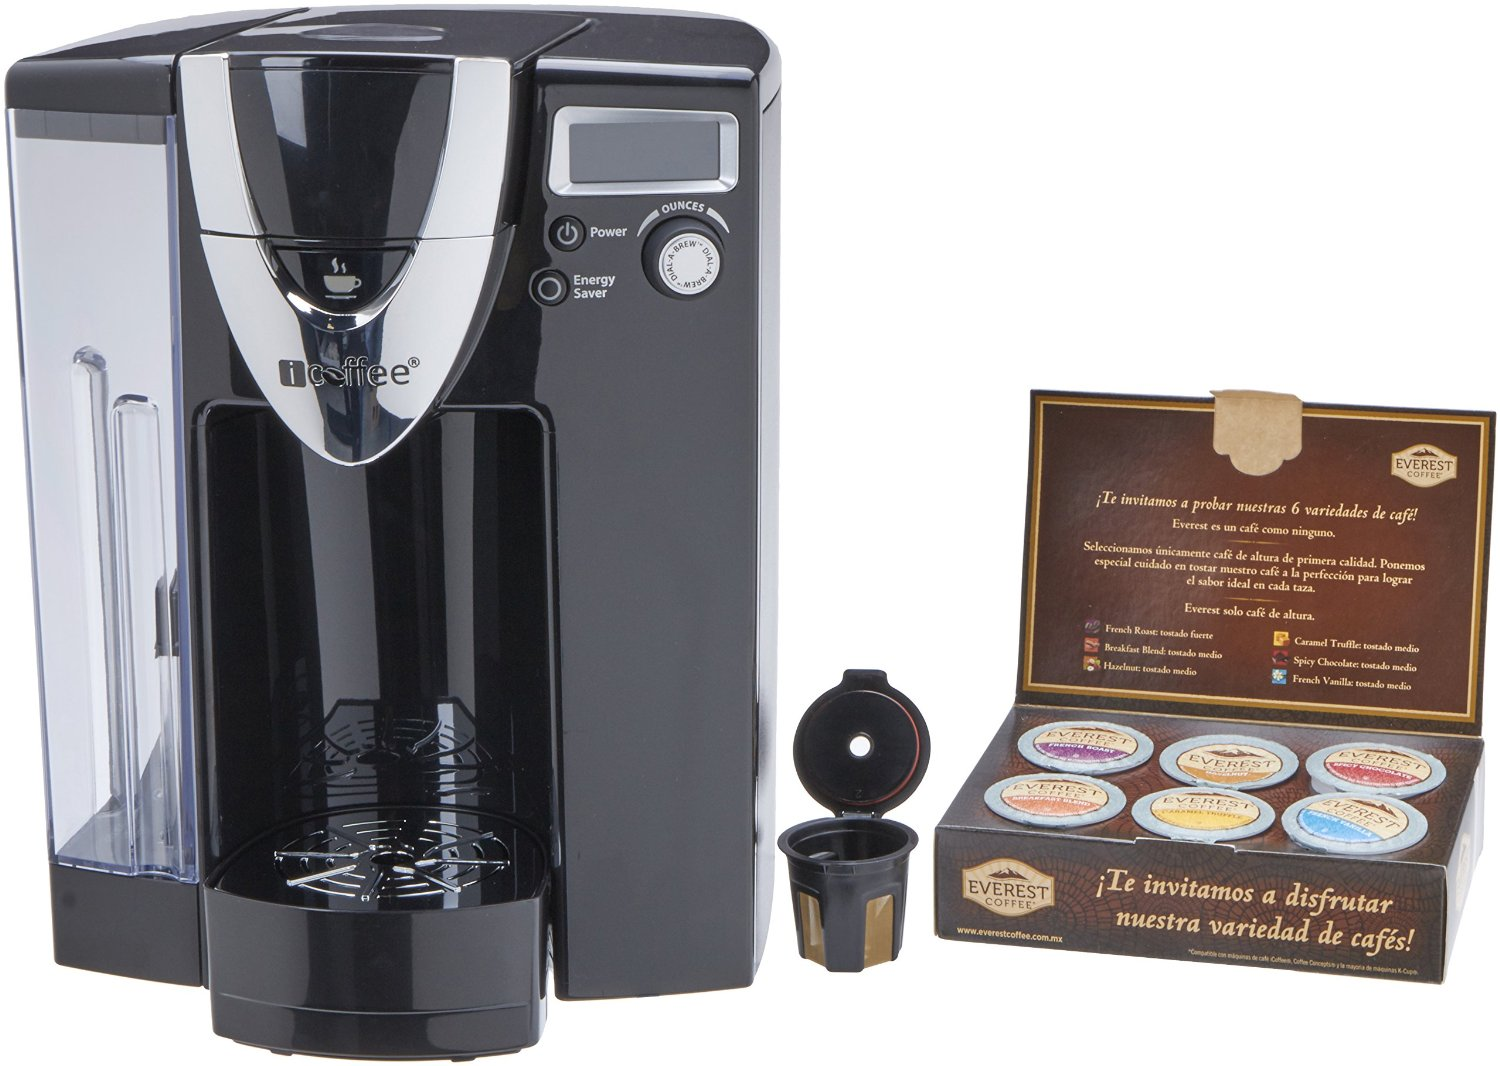 icoffee rss500moz 72 oz mozart single serve coffee brewer with spin brew technology